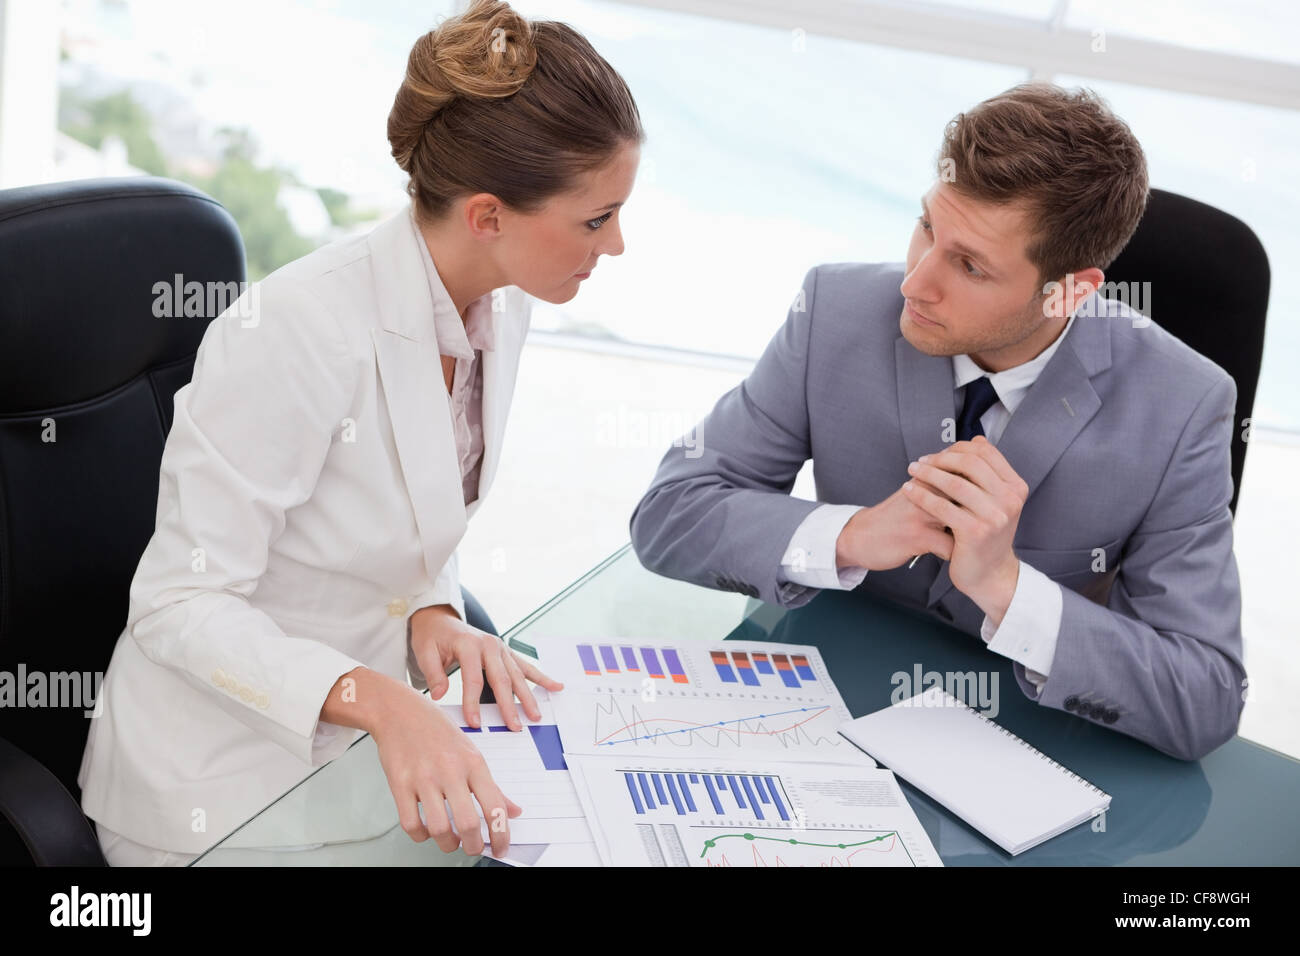 Business team deliberating on market research - Stock Image